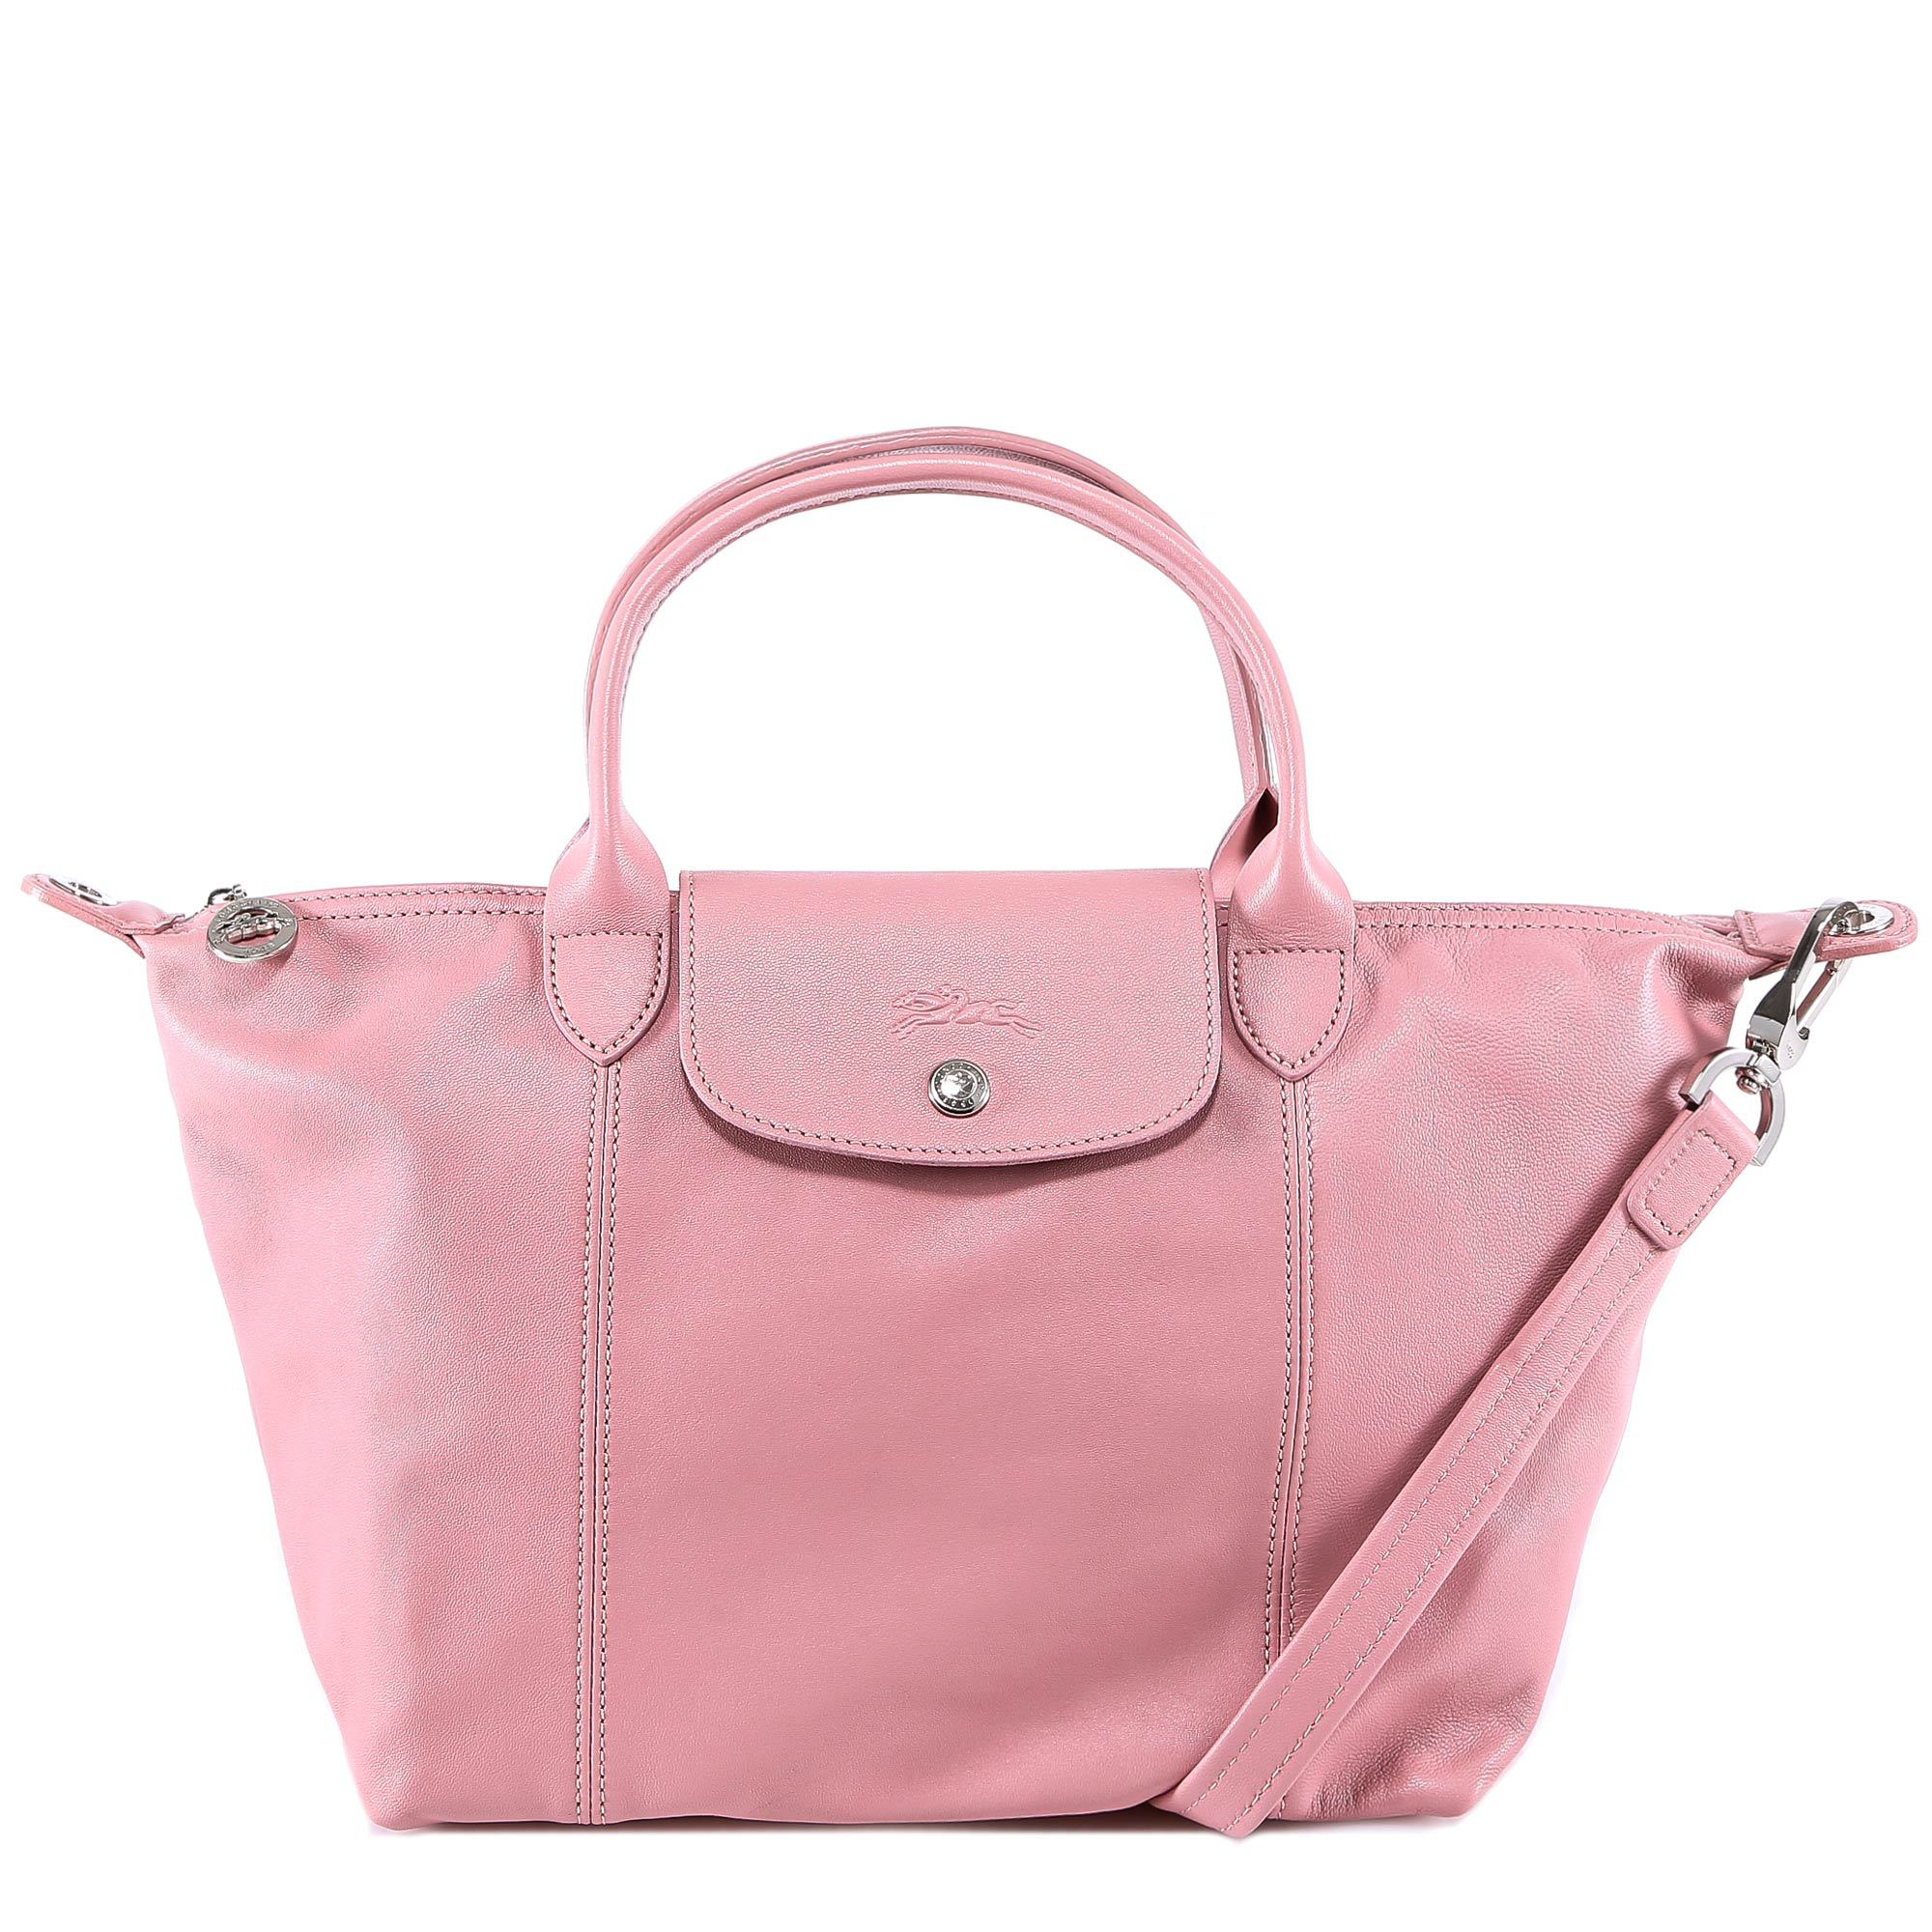 11797eb7e82 Longchamp Le Pliage Cuir Tote Bag In Pink